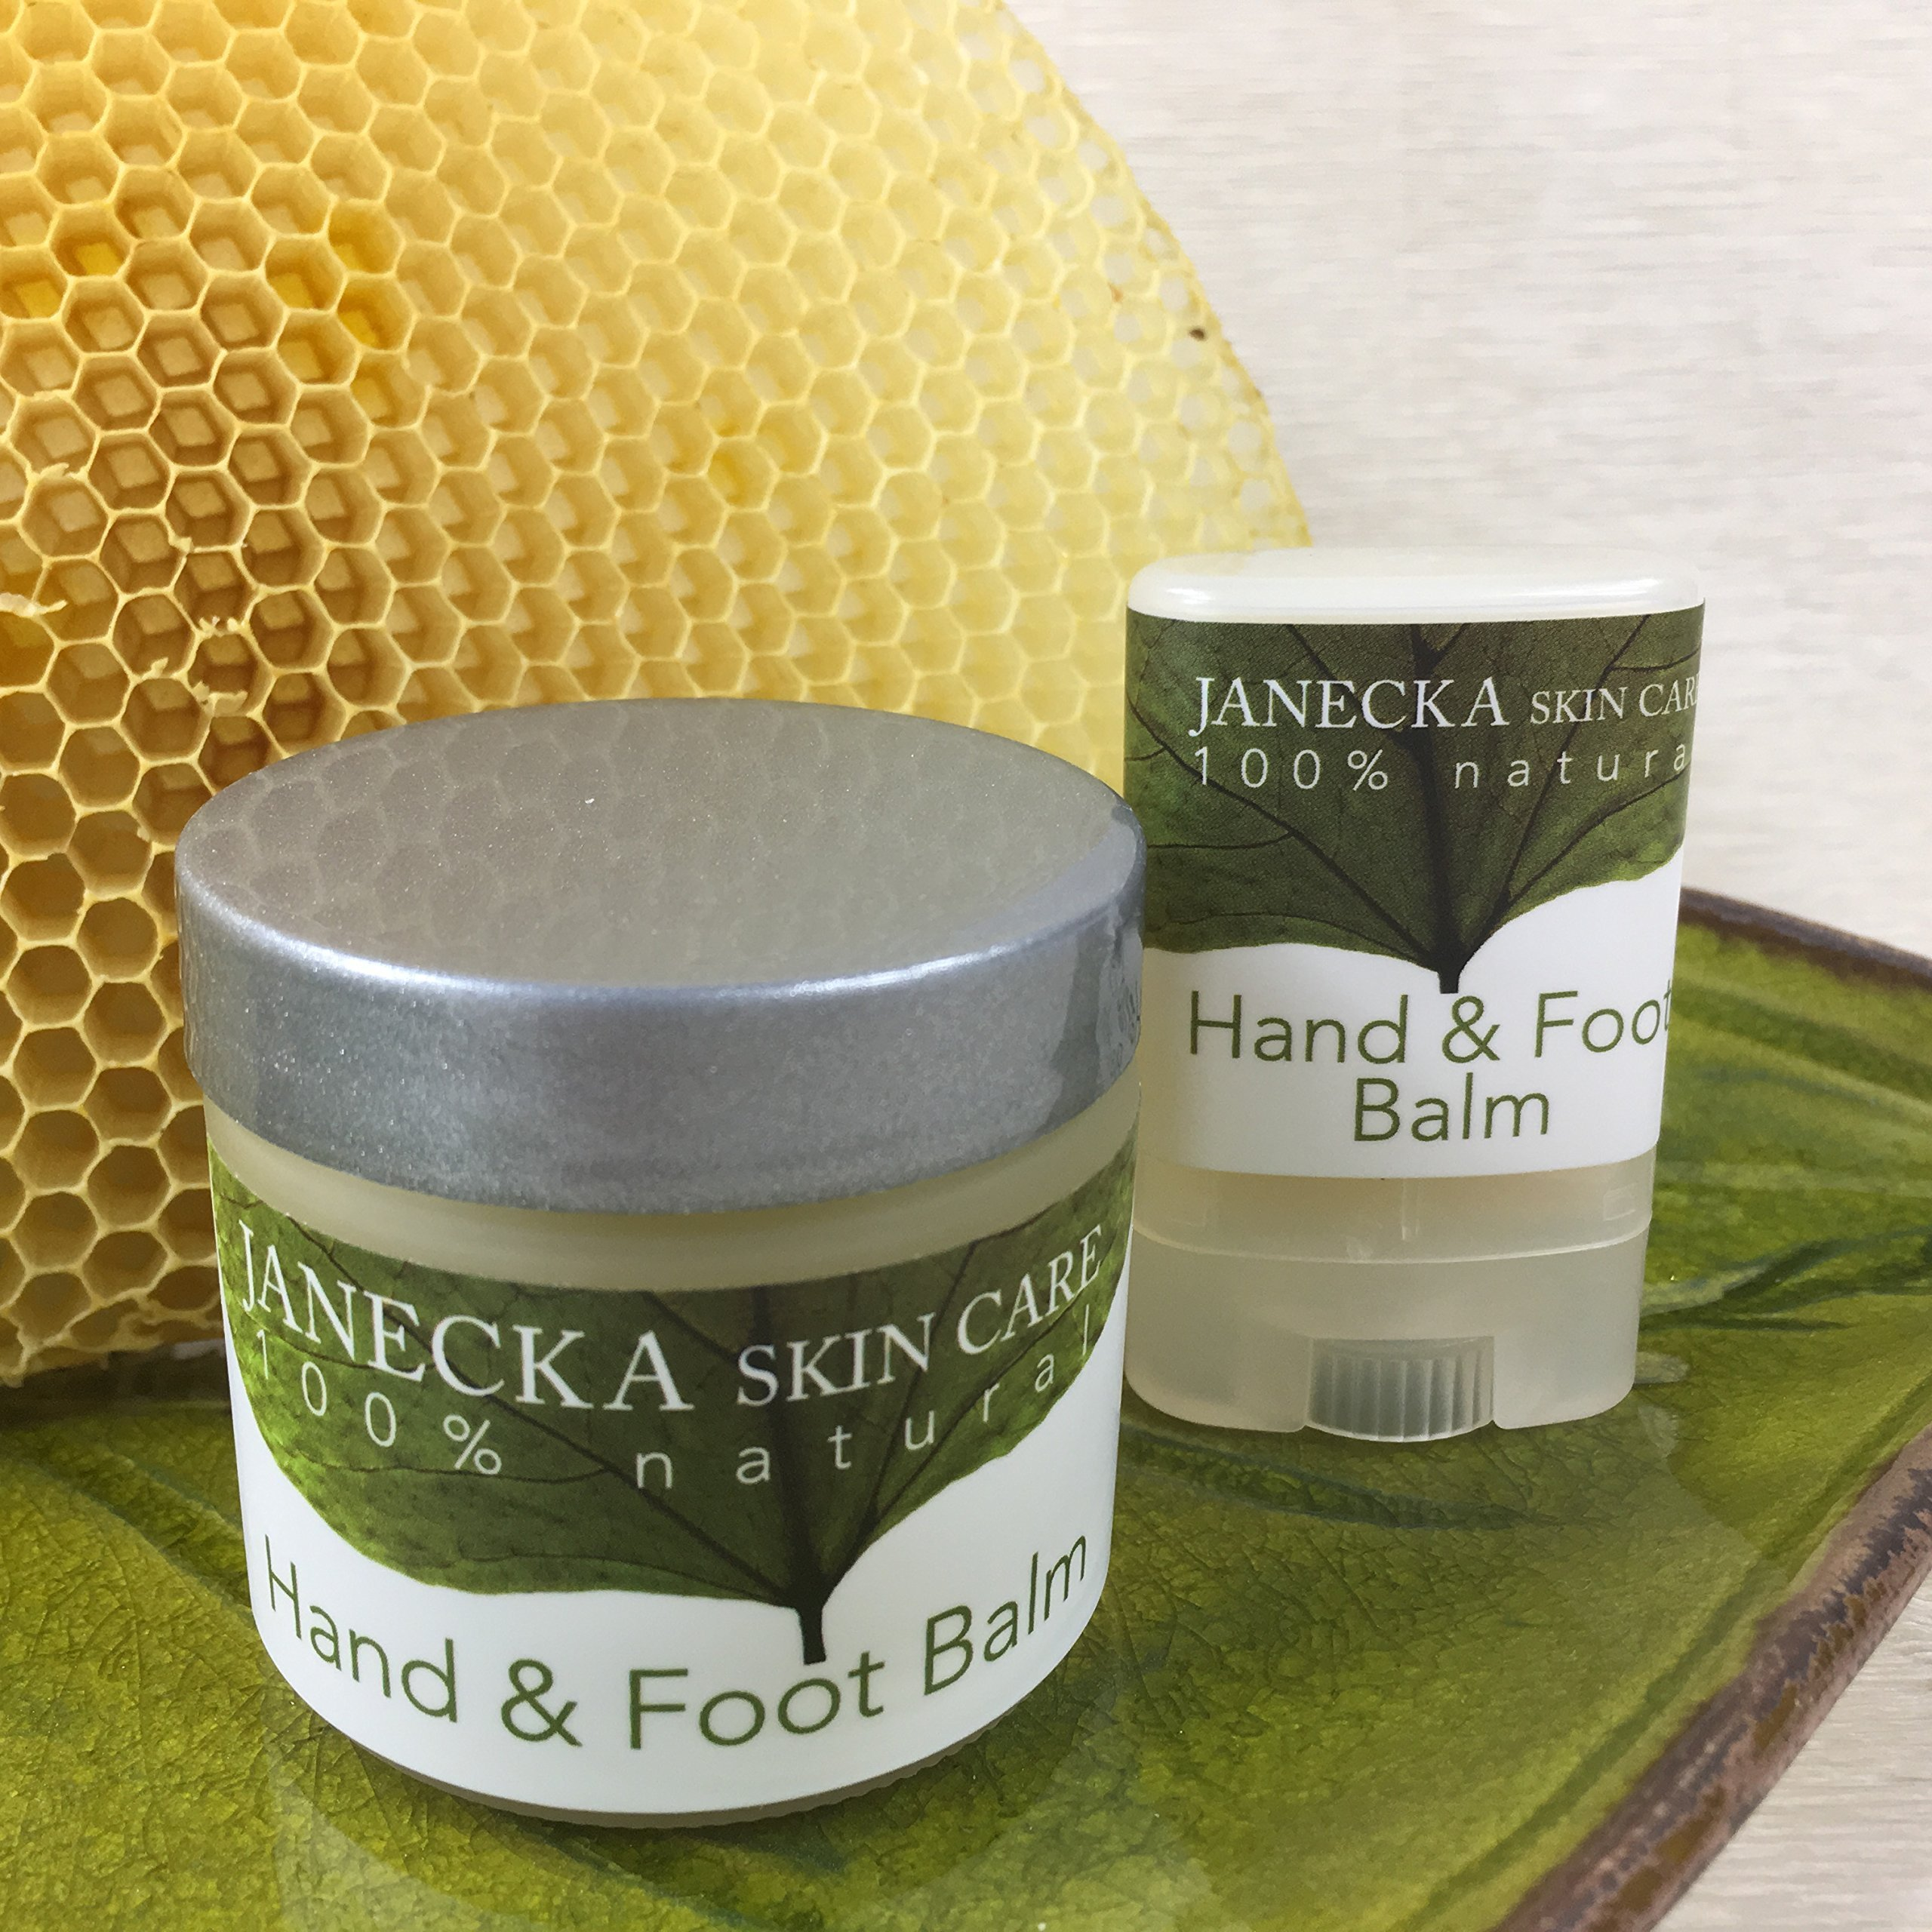 JANECKA Hand and Foot Balm/Travel Size and 2 oz Jar/Severe Cracked Skin